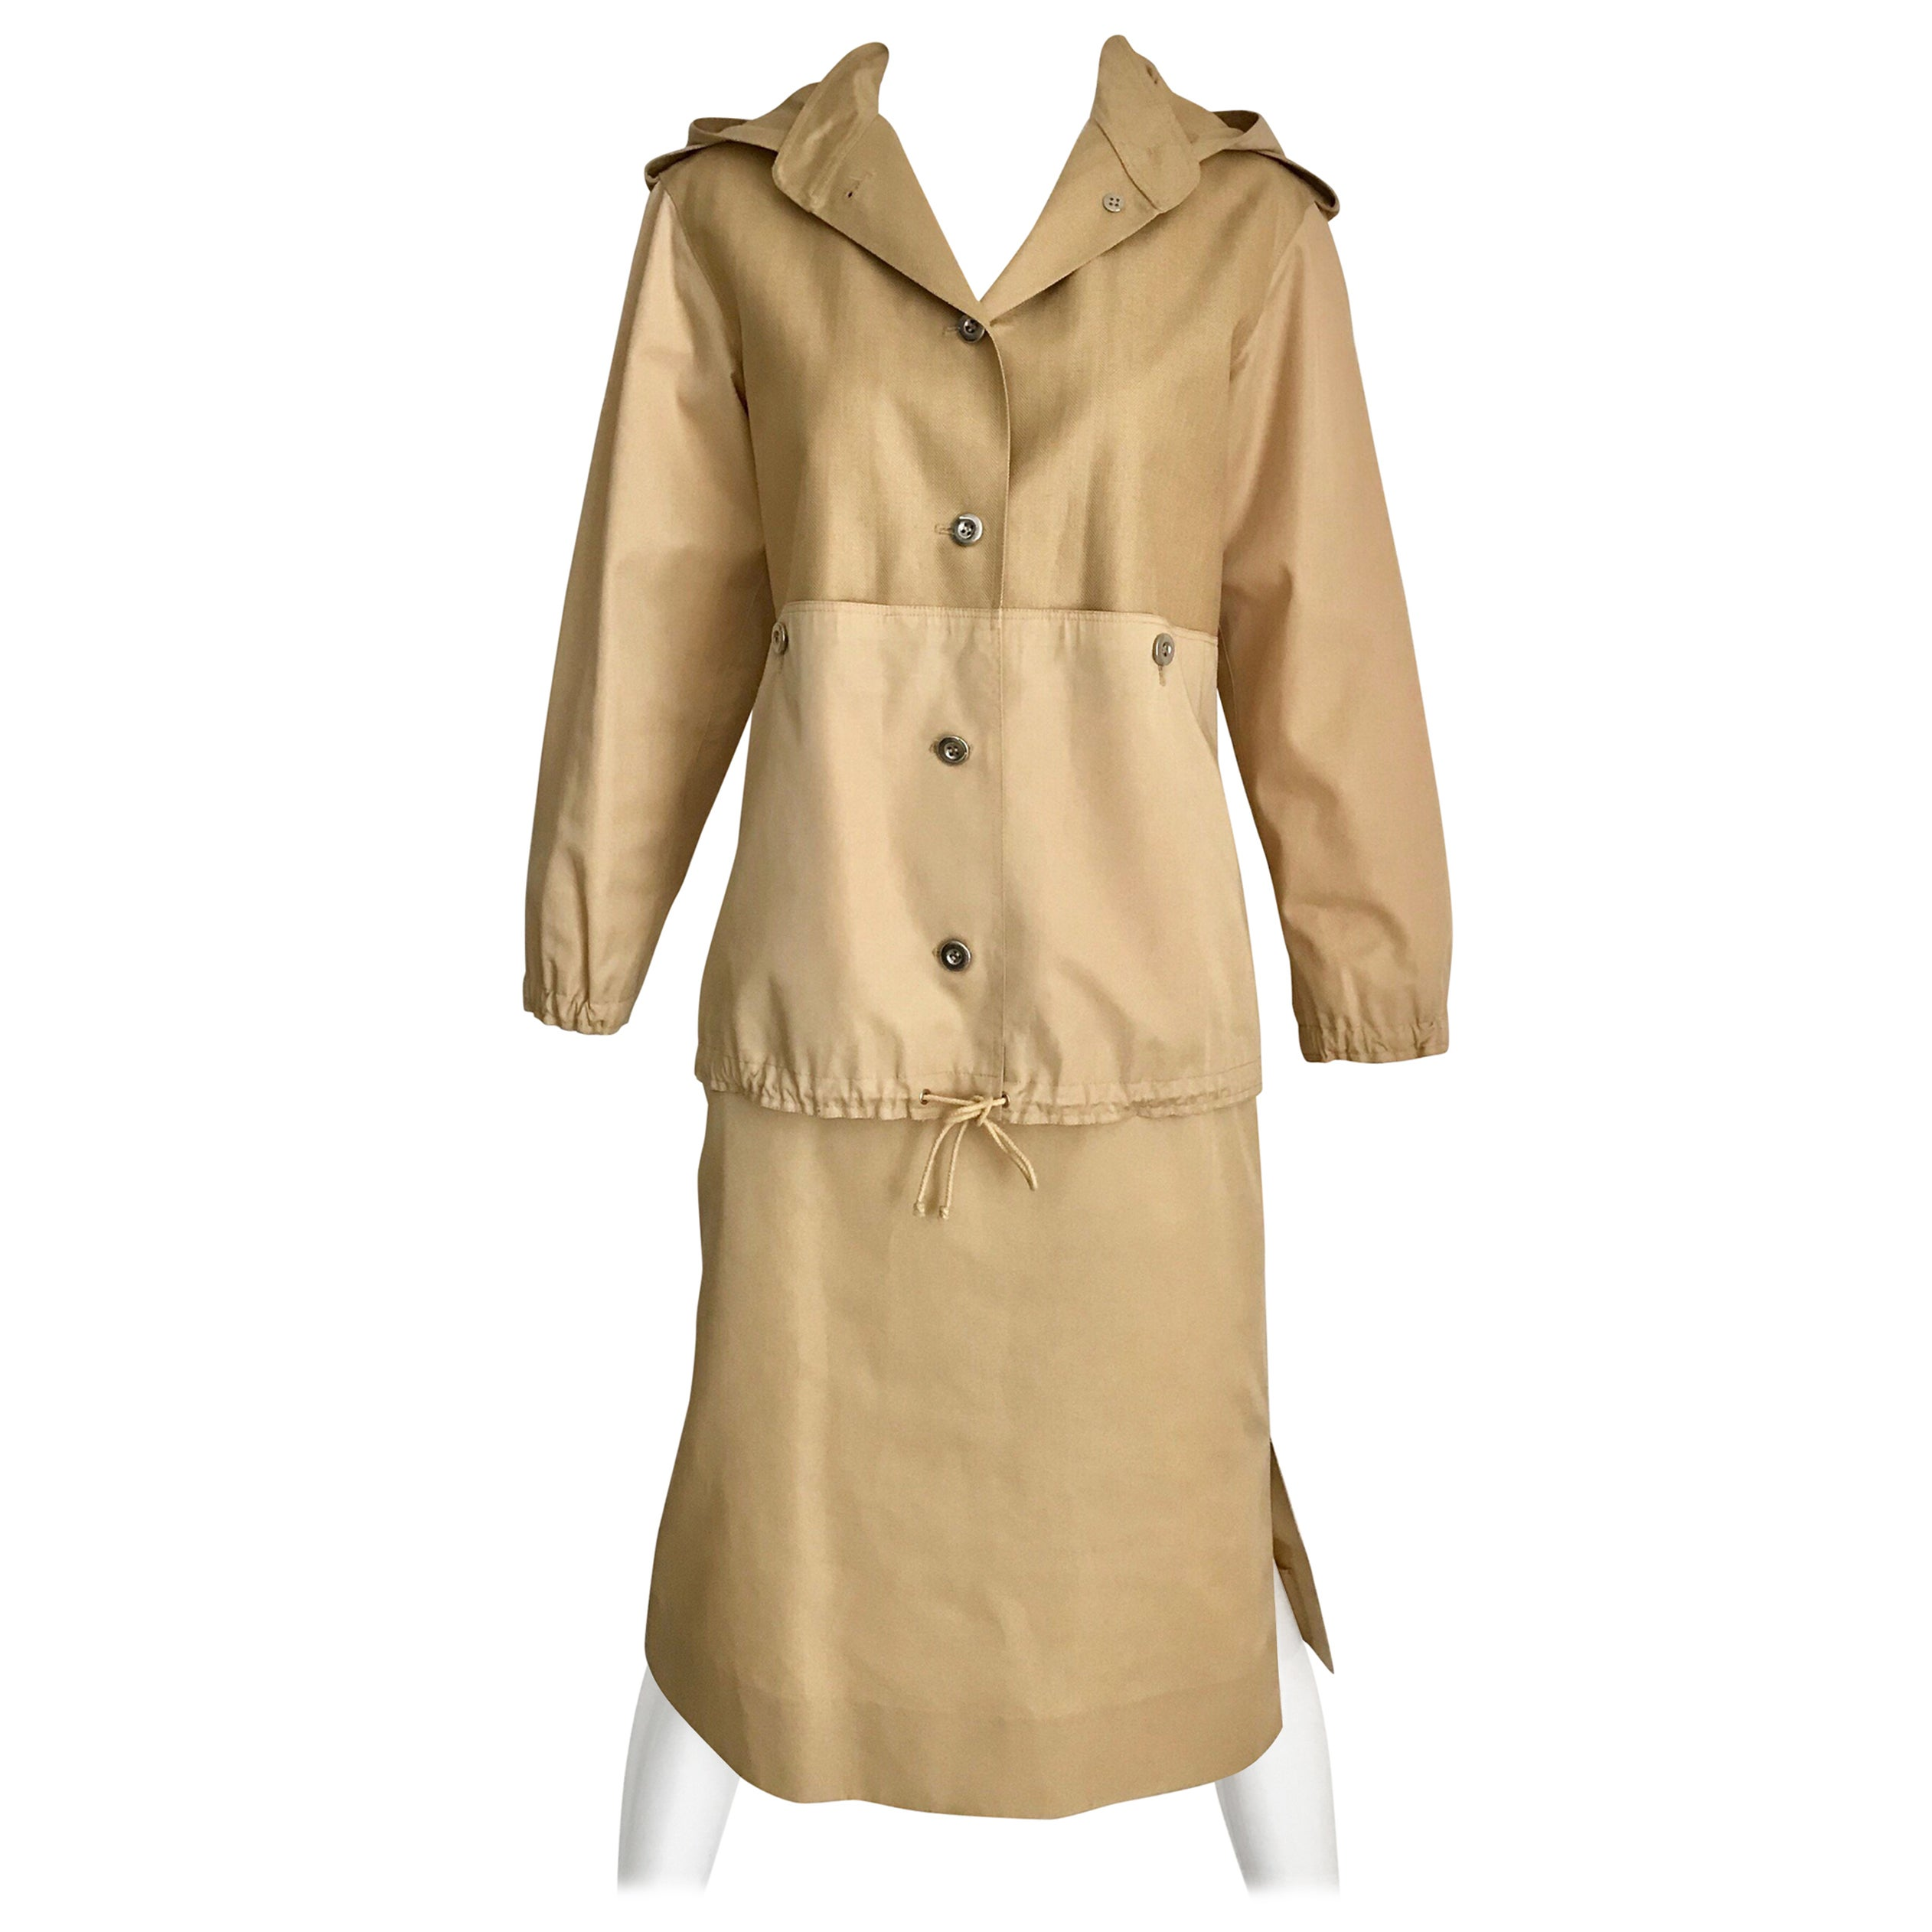 Vintage Courreges Tan Cotton Sport Coat and Skirt Set